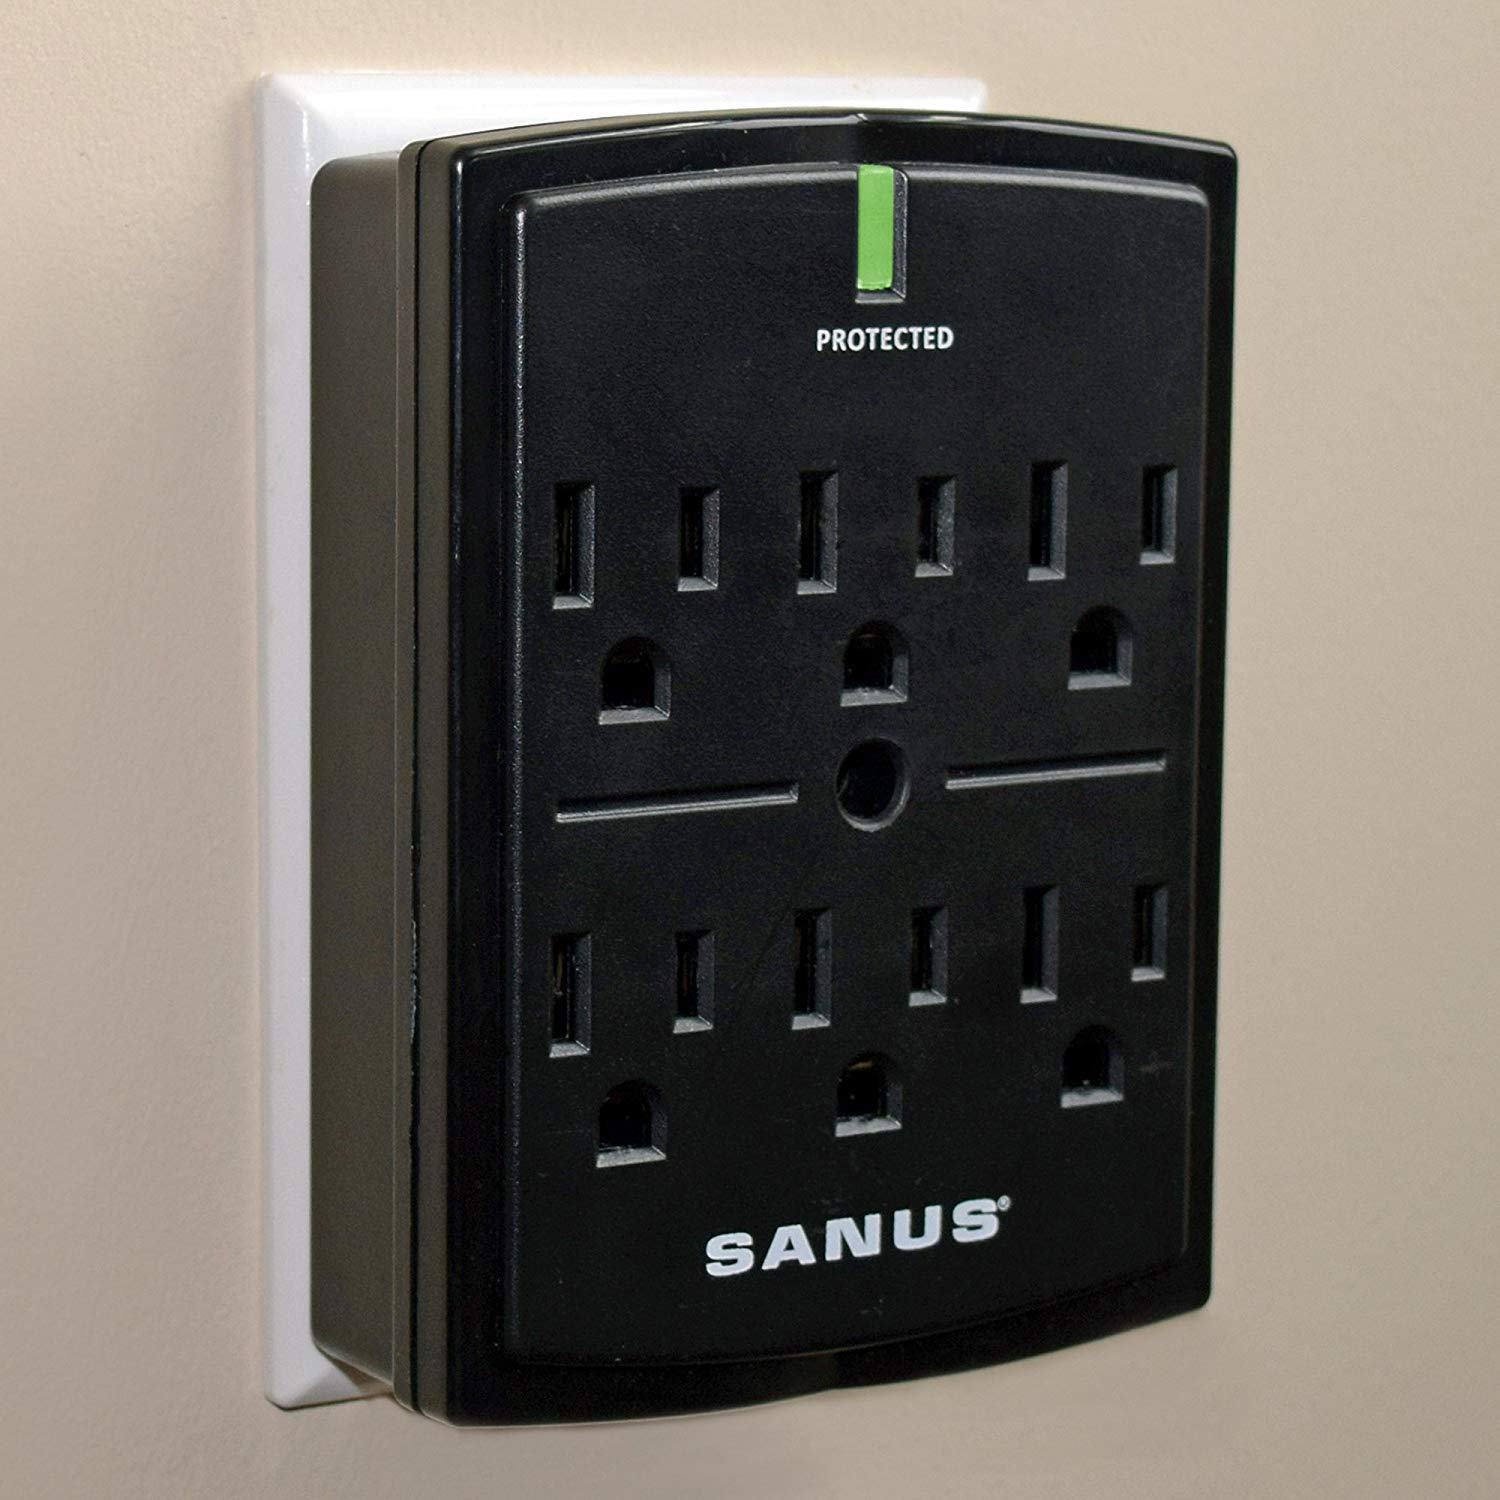 Amazon.com: Sanus on-wall Perfil Bajo 1080j Fireproof ...